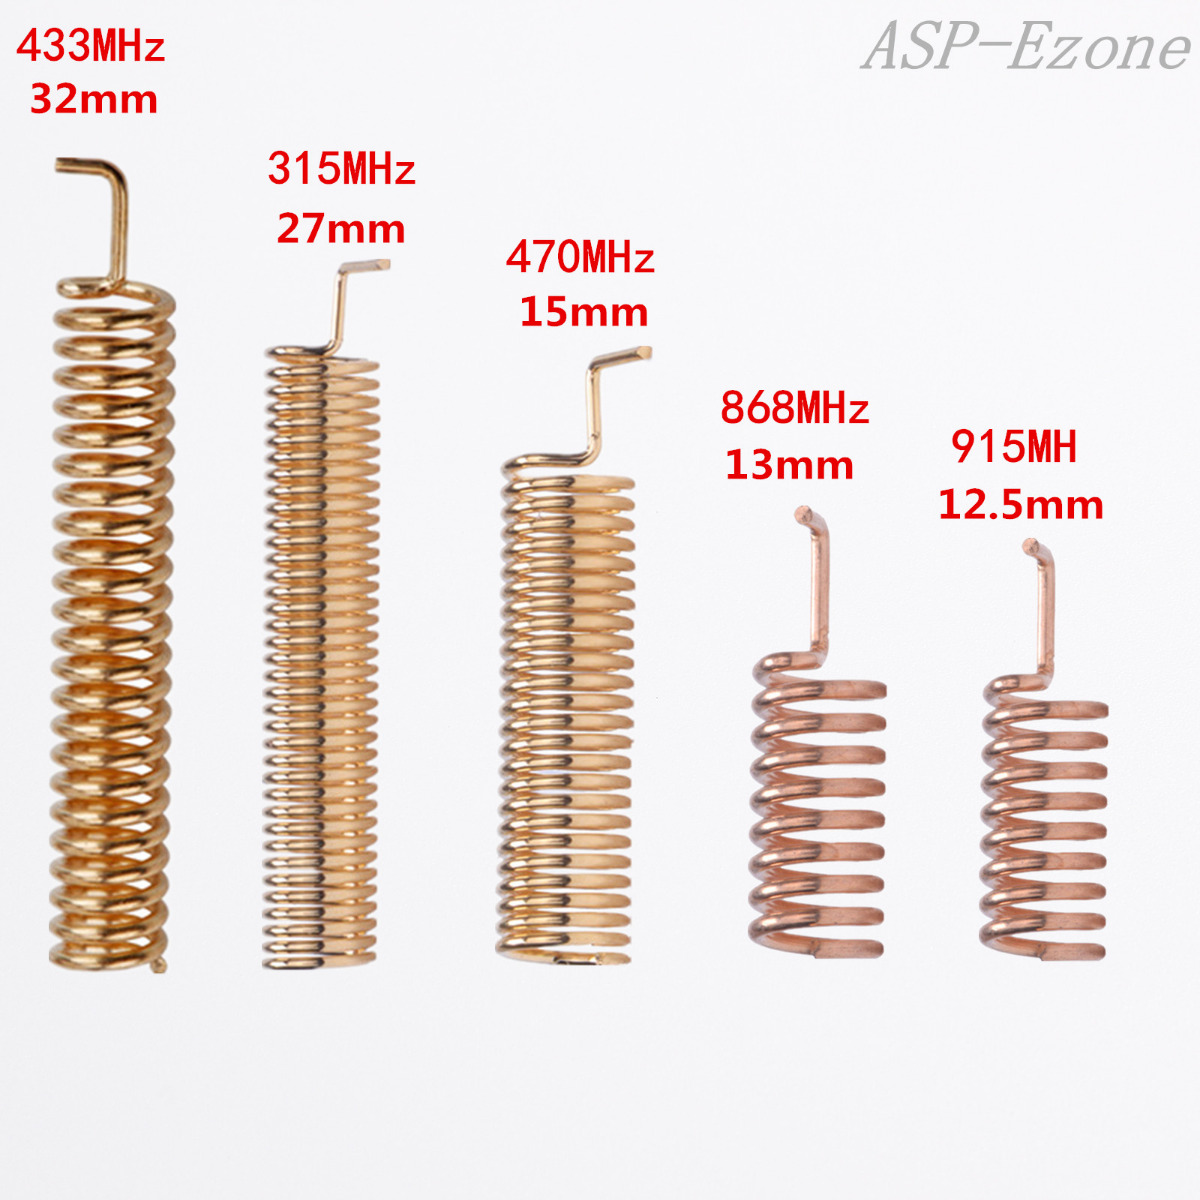 10pcs Helical Antenna 315mhz 470mhz 868mhz 433mhz 915mhz For Remote Inductor Coil Tv And Camera Buy Power Coilinductor Welcome To Bulk Purchasewe Will Give You A Great Discount